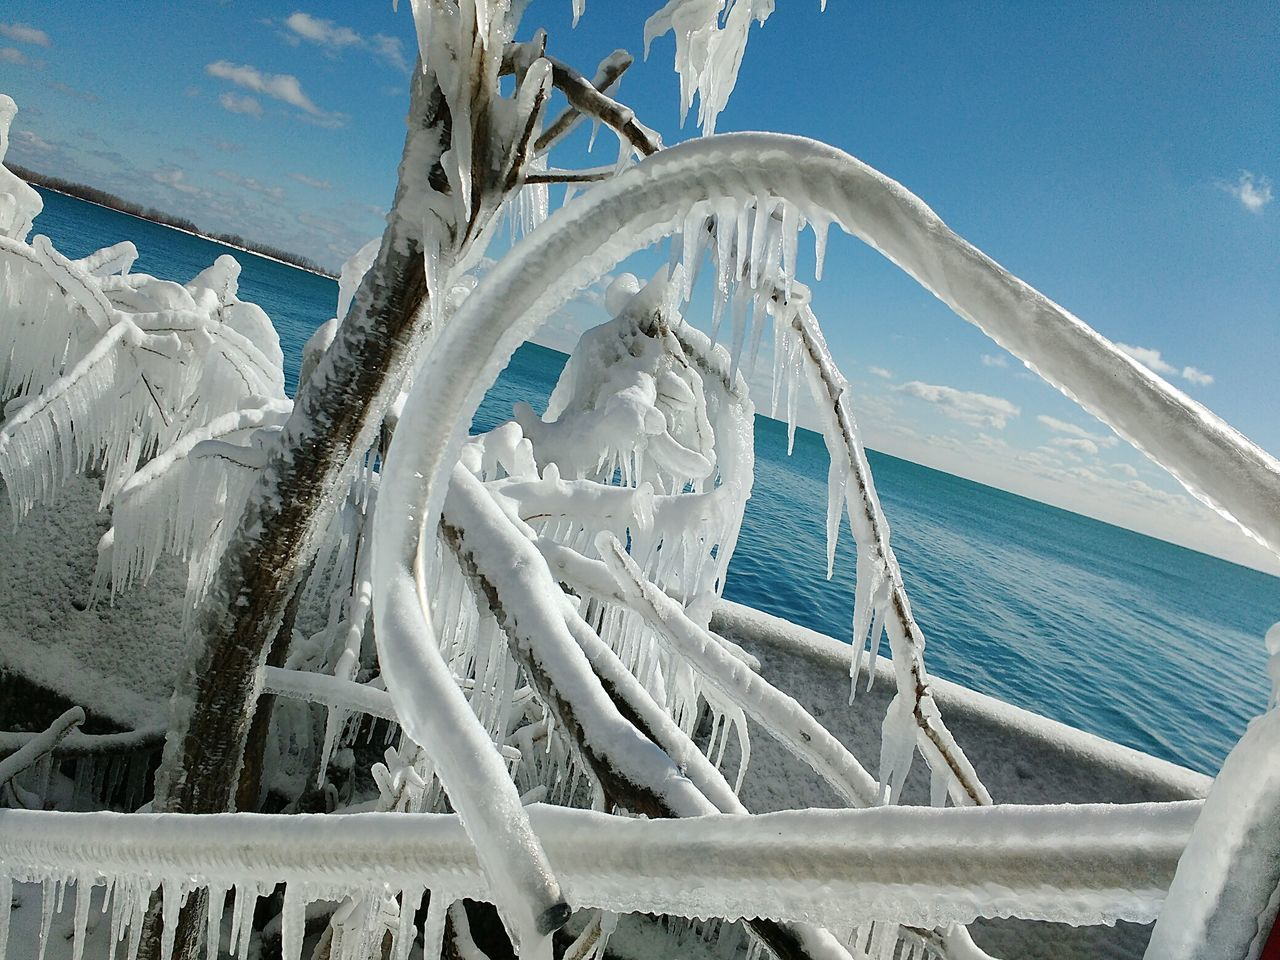 Frozen Driftwood Against Sea During Winter